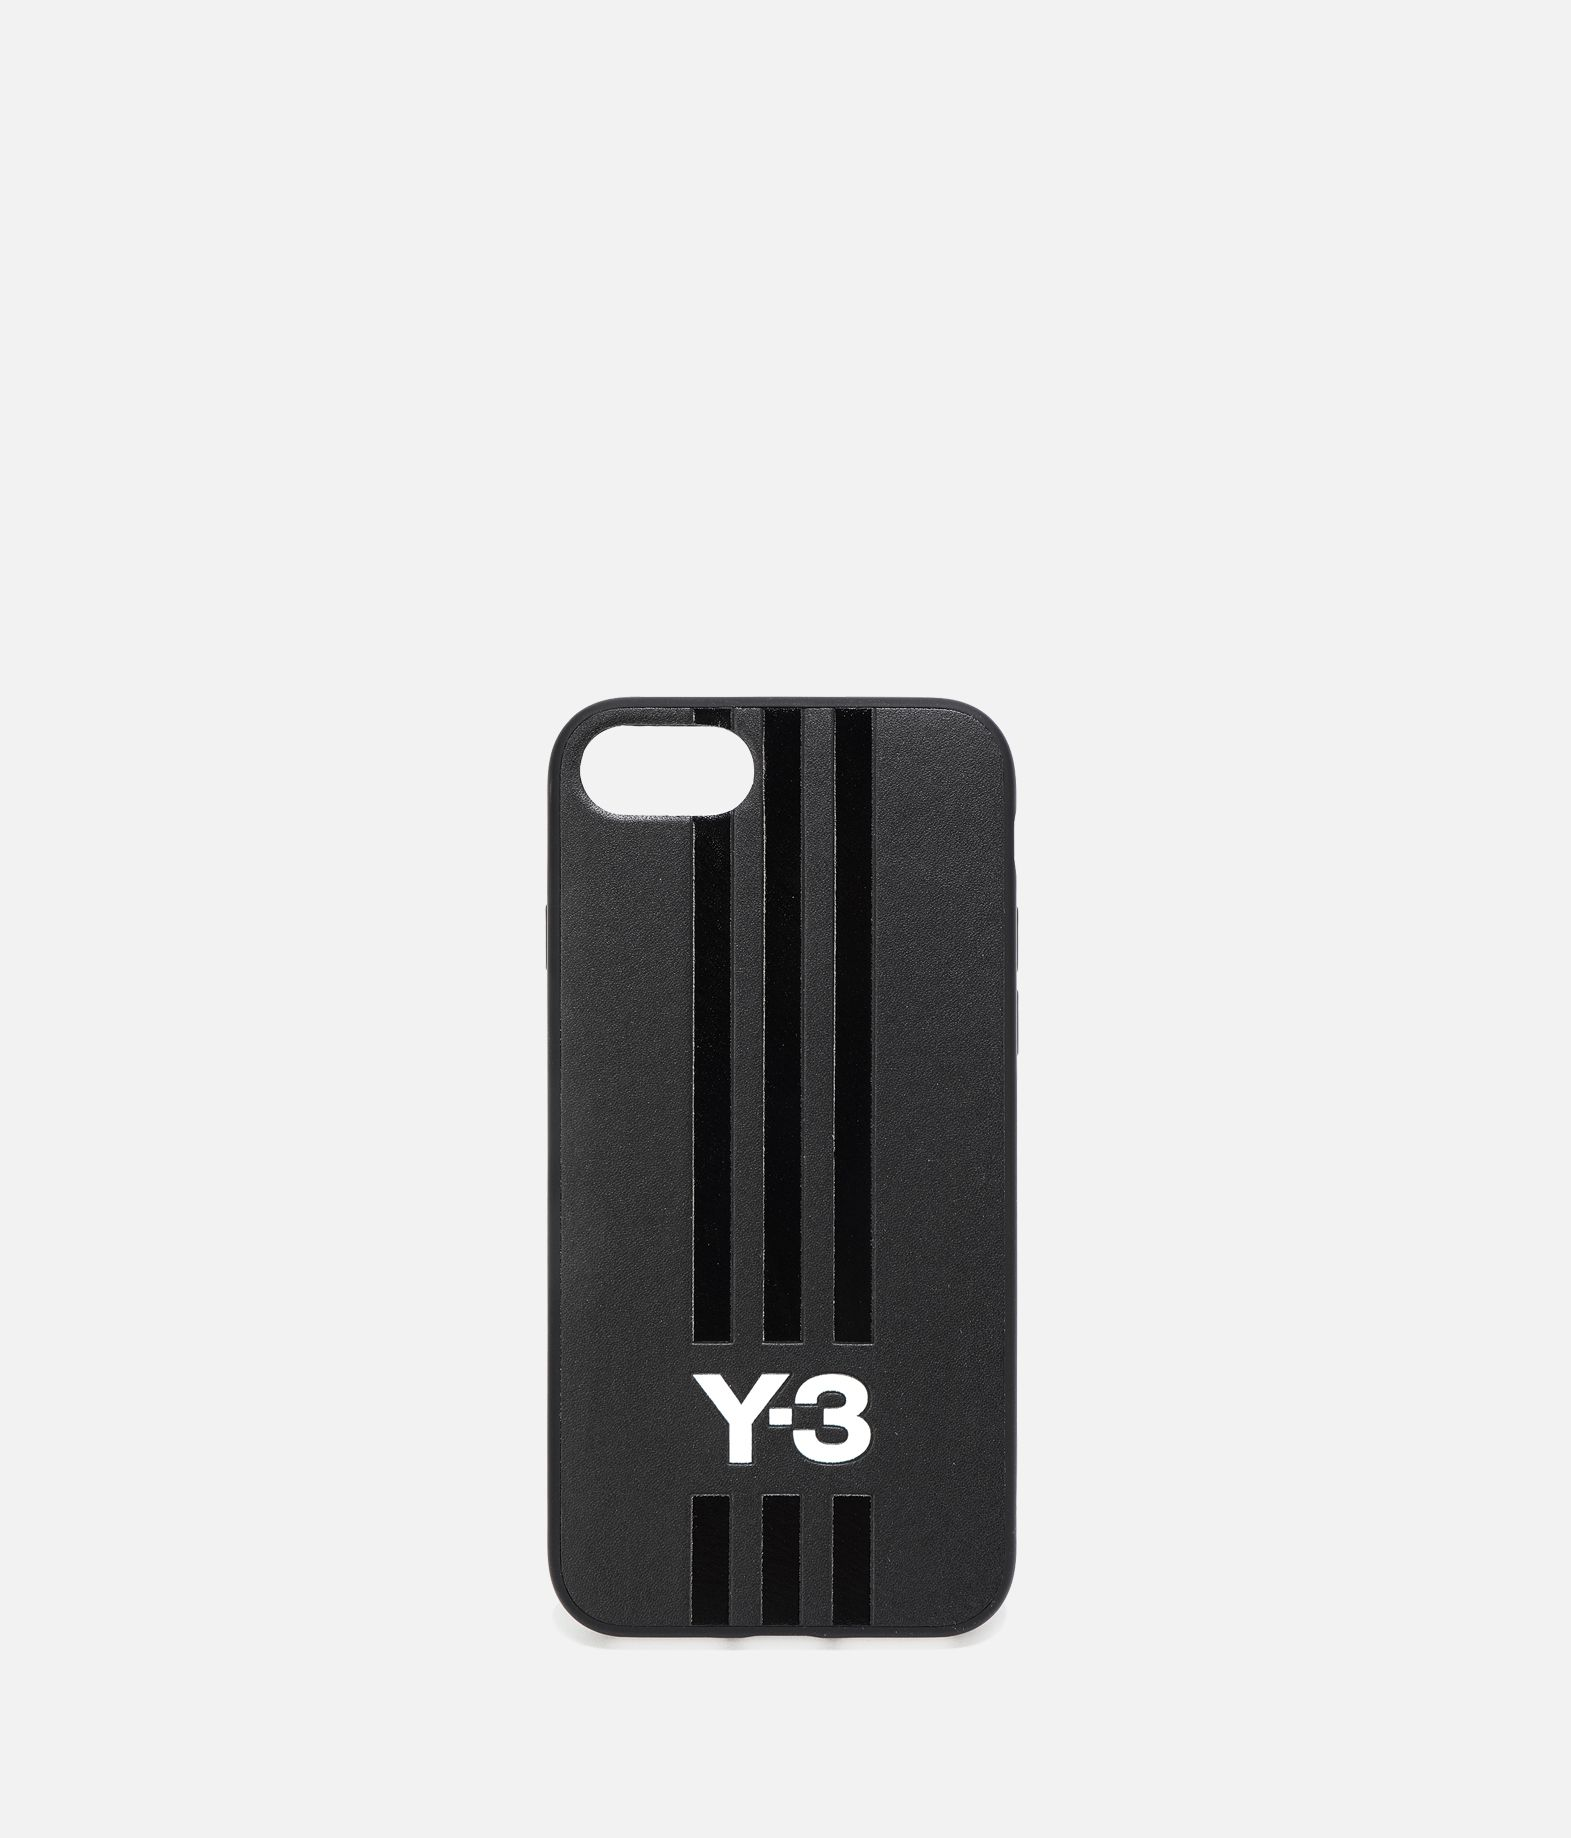 Y-3 Y-3 Moulded Case Leather iPhone 6/6S/7/8 Phone case E f